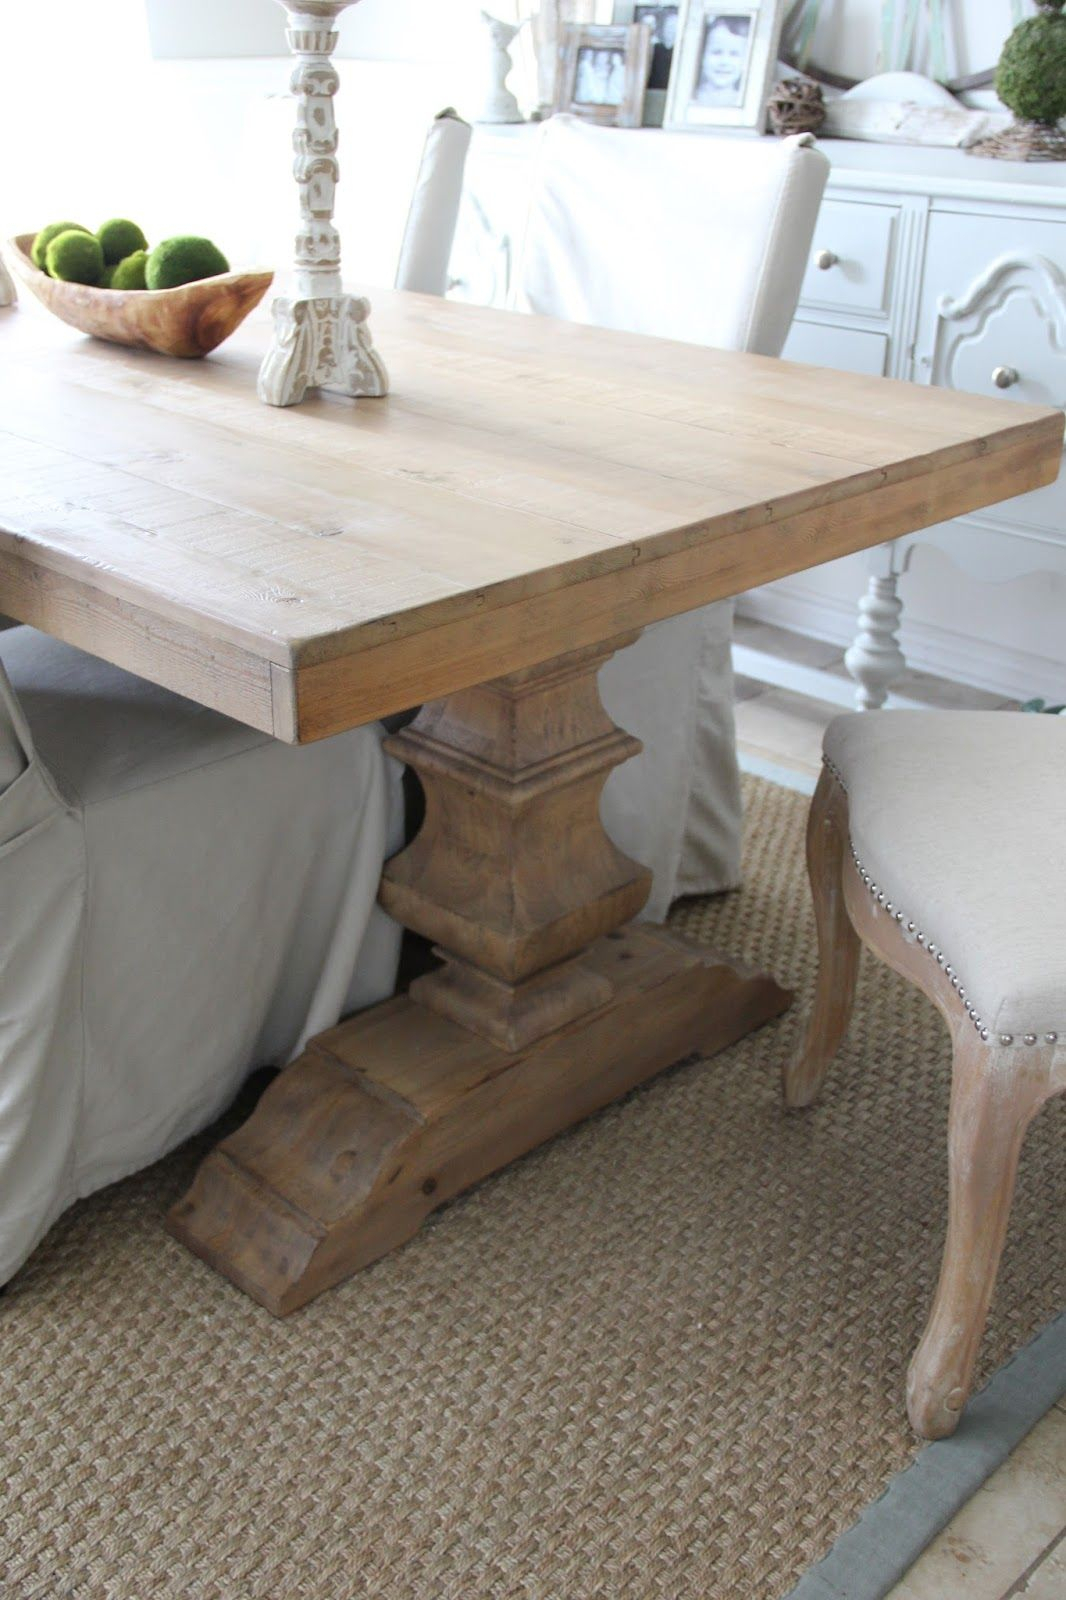 Pottery Barn Banks Dining Table In 2019 | Dining Room Inside Most Recent Seadrift Banks Extending Dining Tables (View 6 of 25)